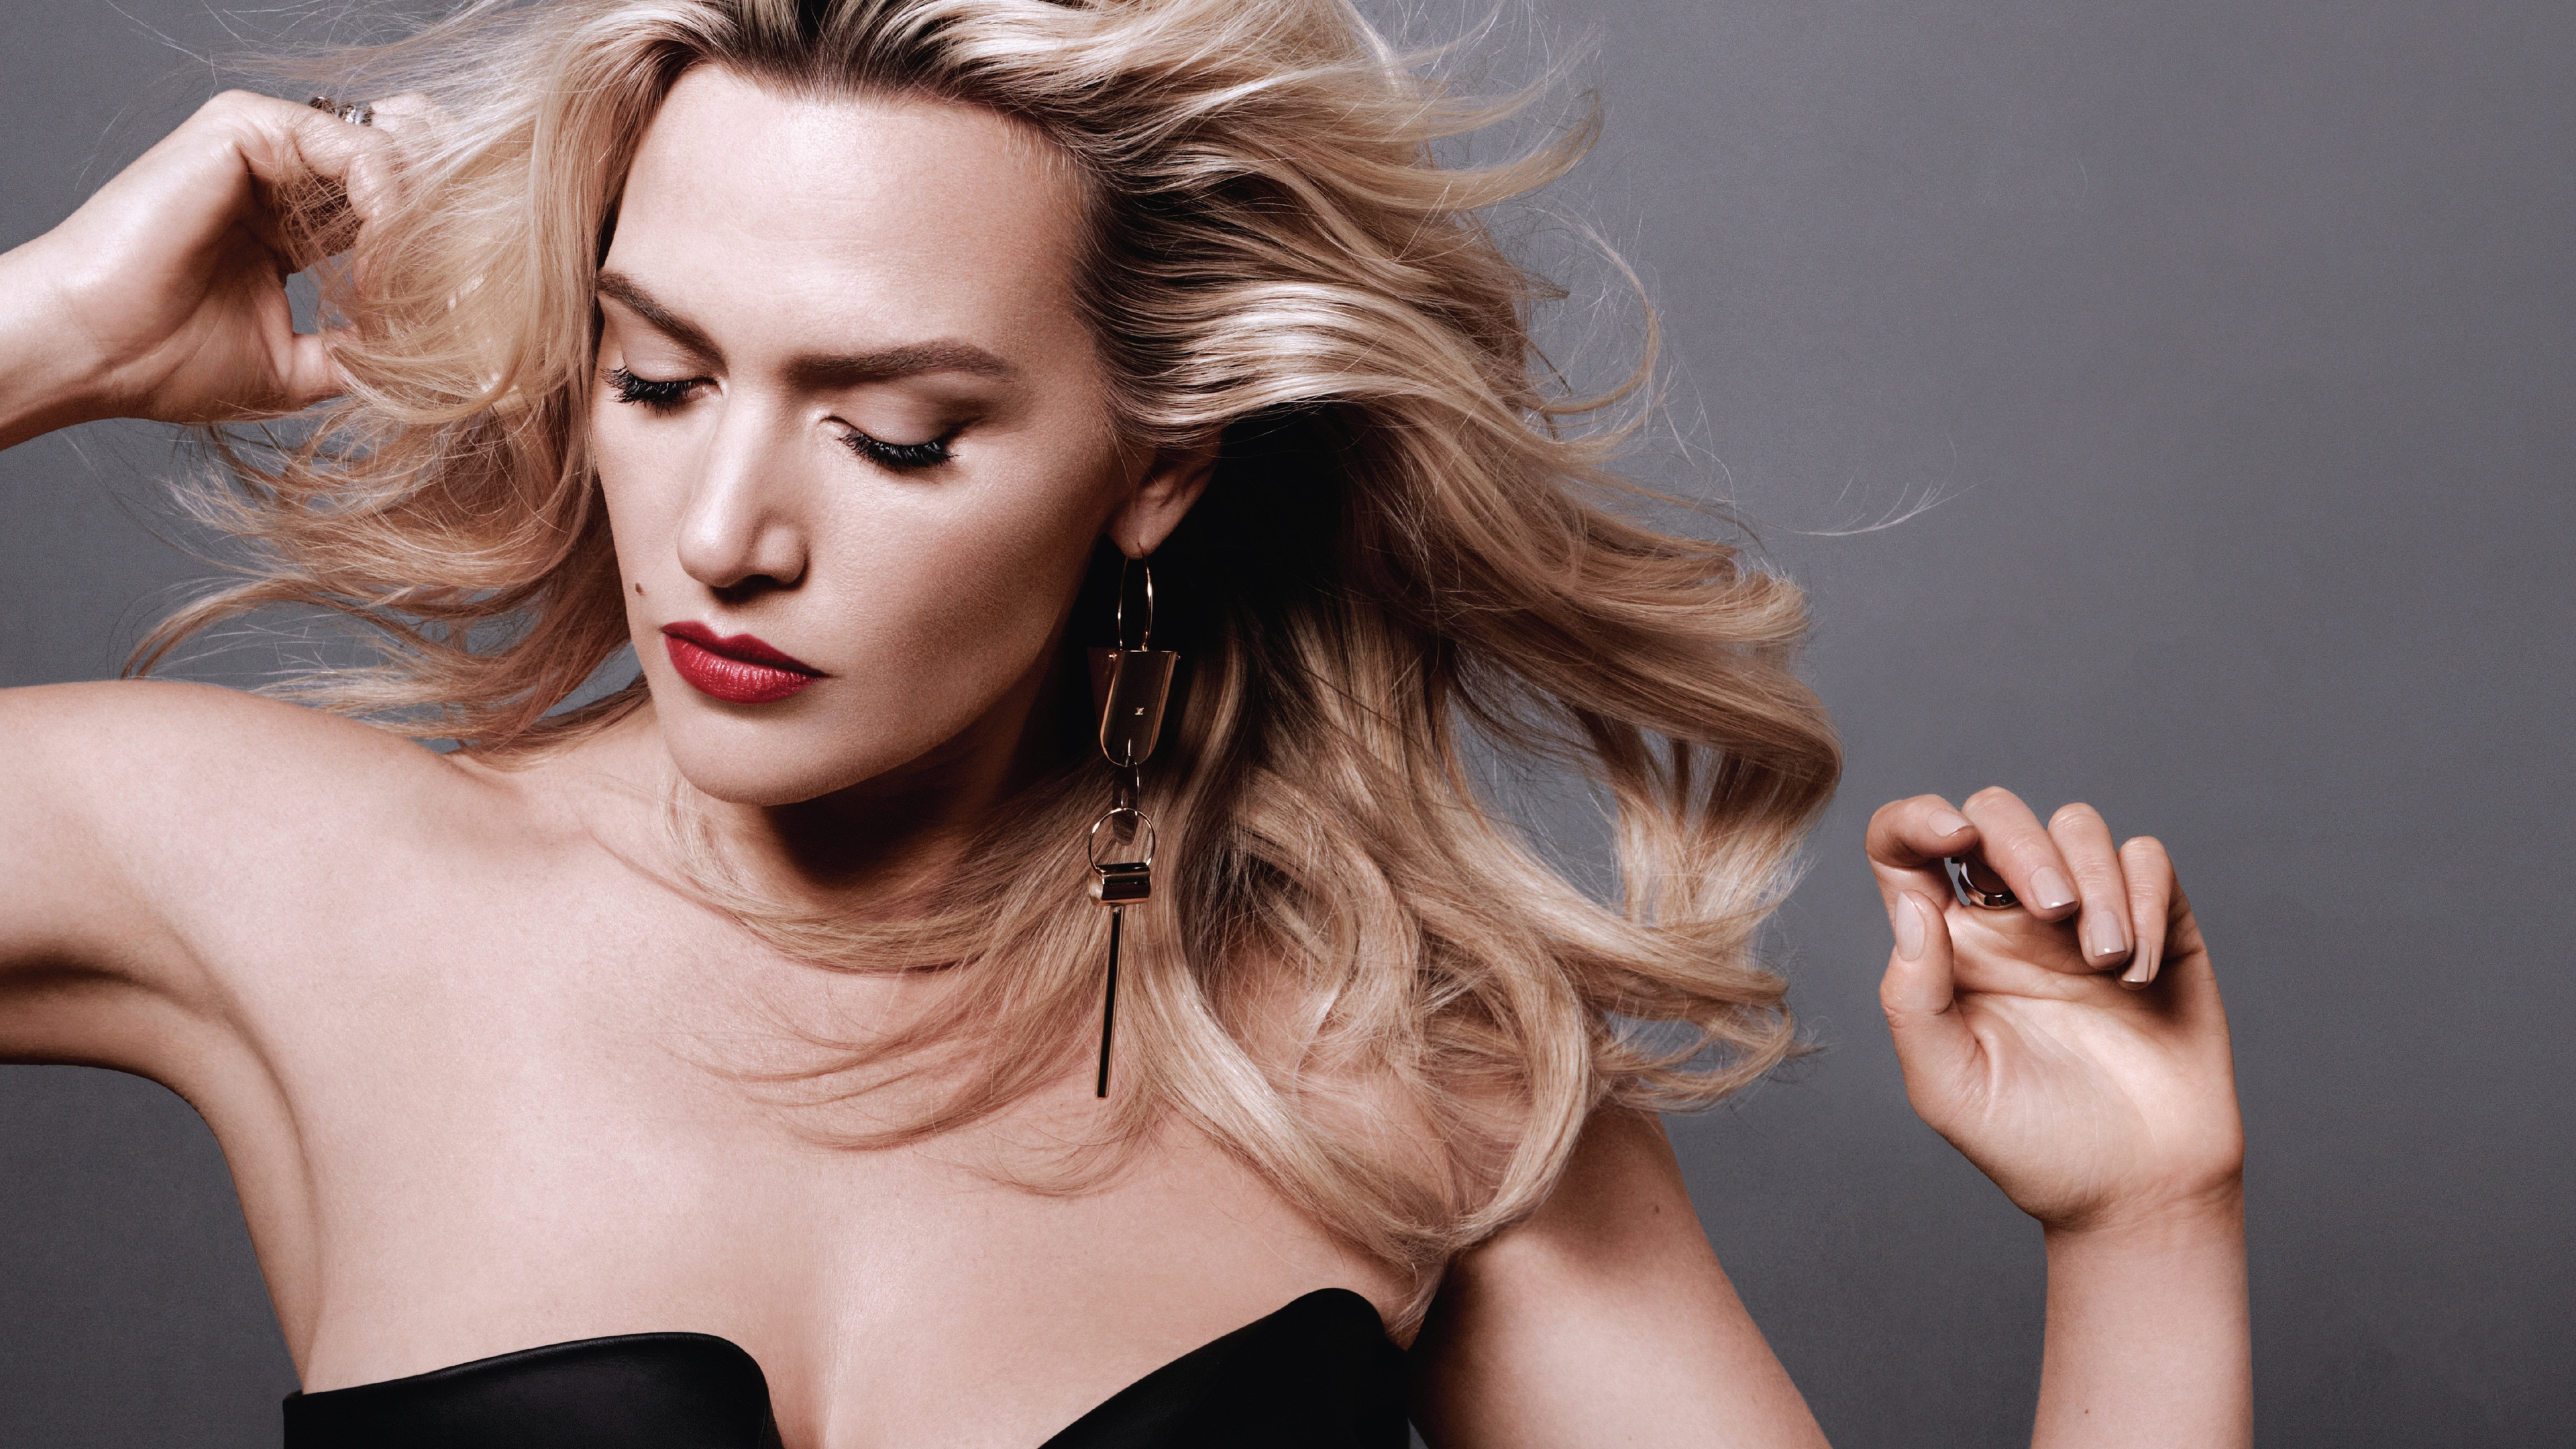 kate winslet 4k 1542236265 - Kate Winslet 4k - kate winslet wallpapers, hd-wallpapers, girls wallpapers, celebrities wallpapers, 4k-wallpapers